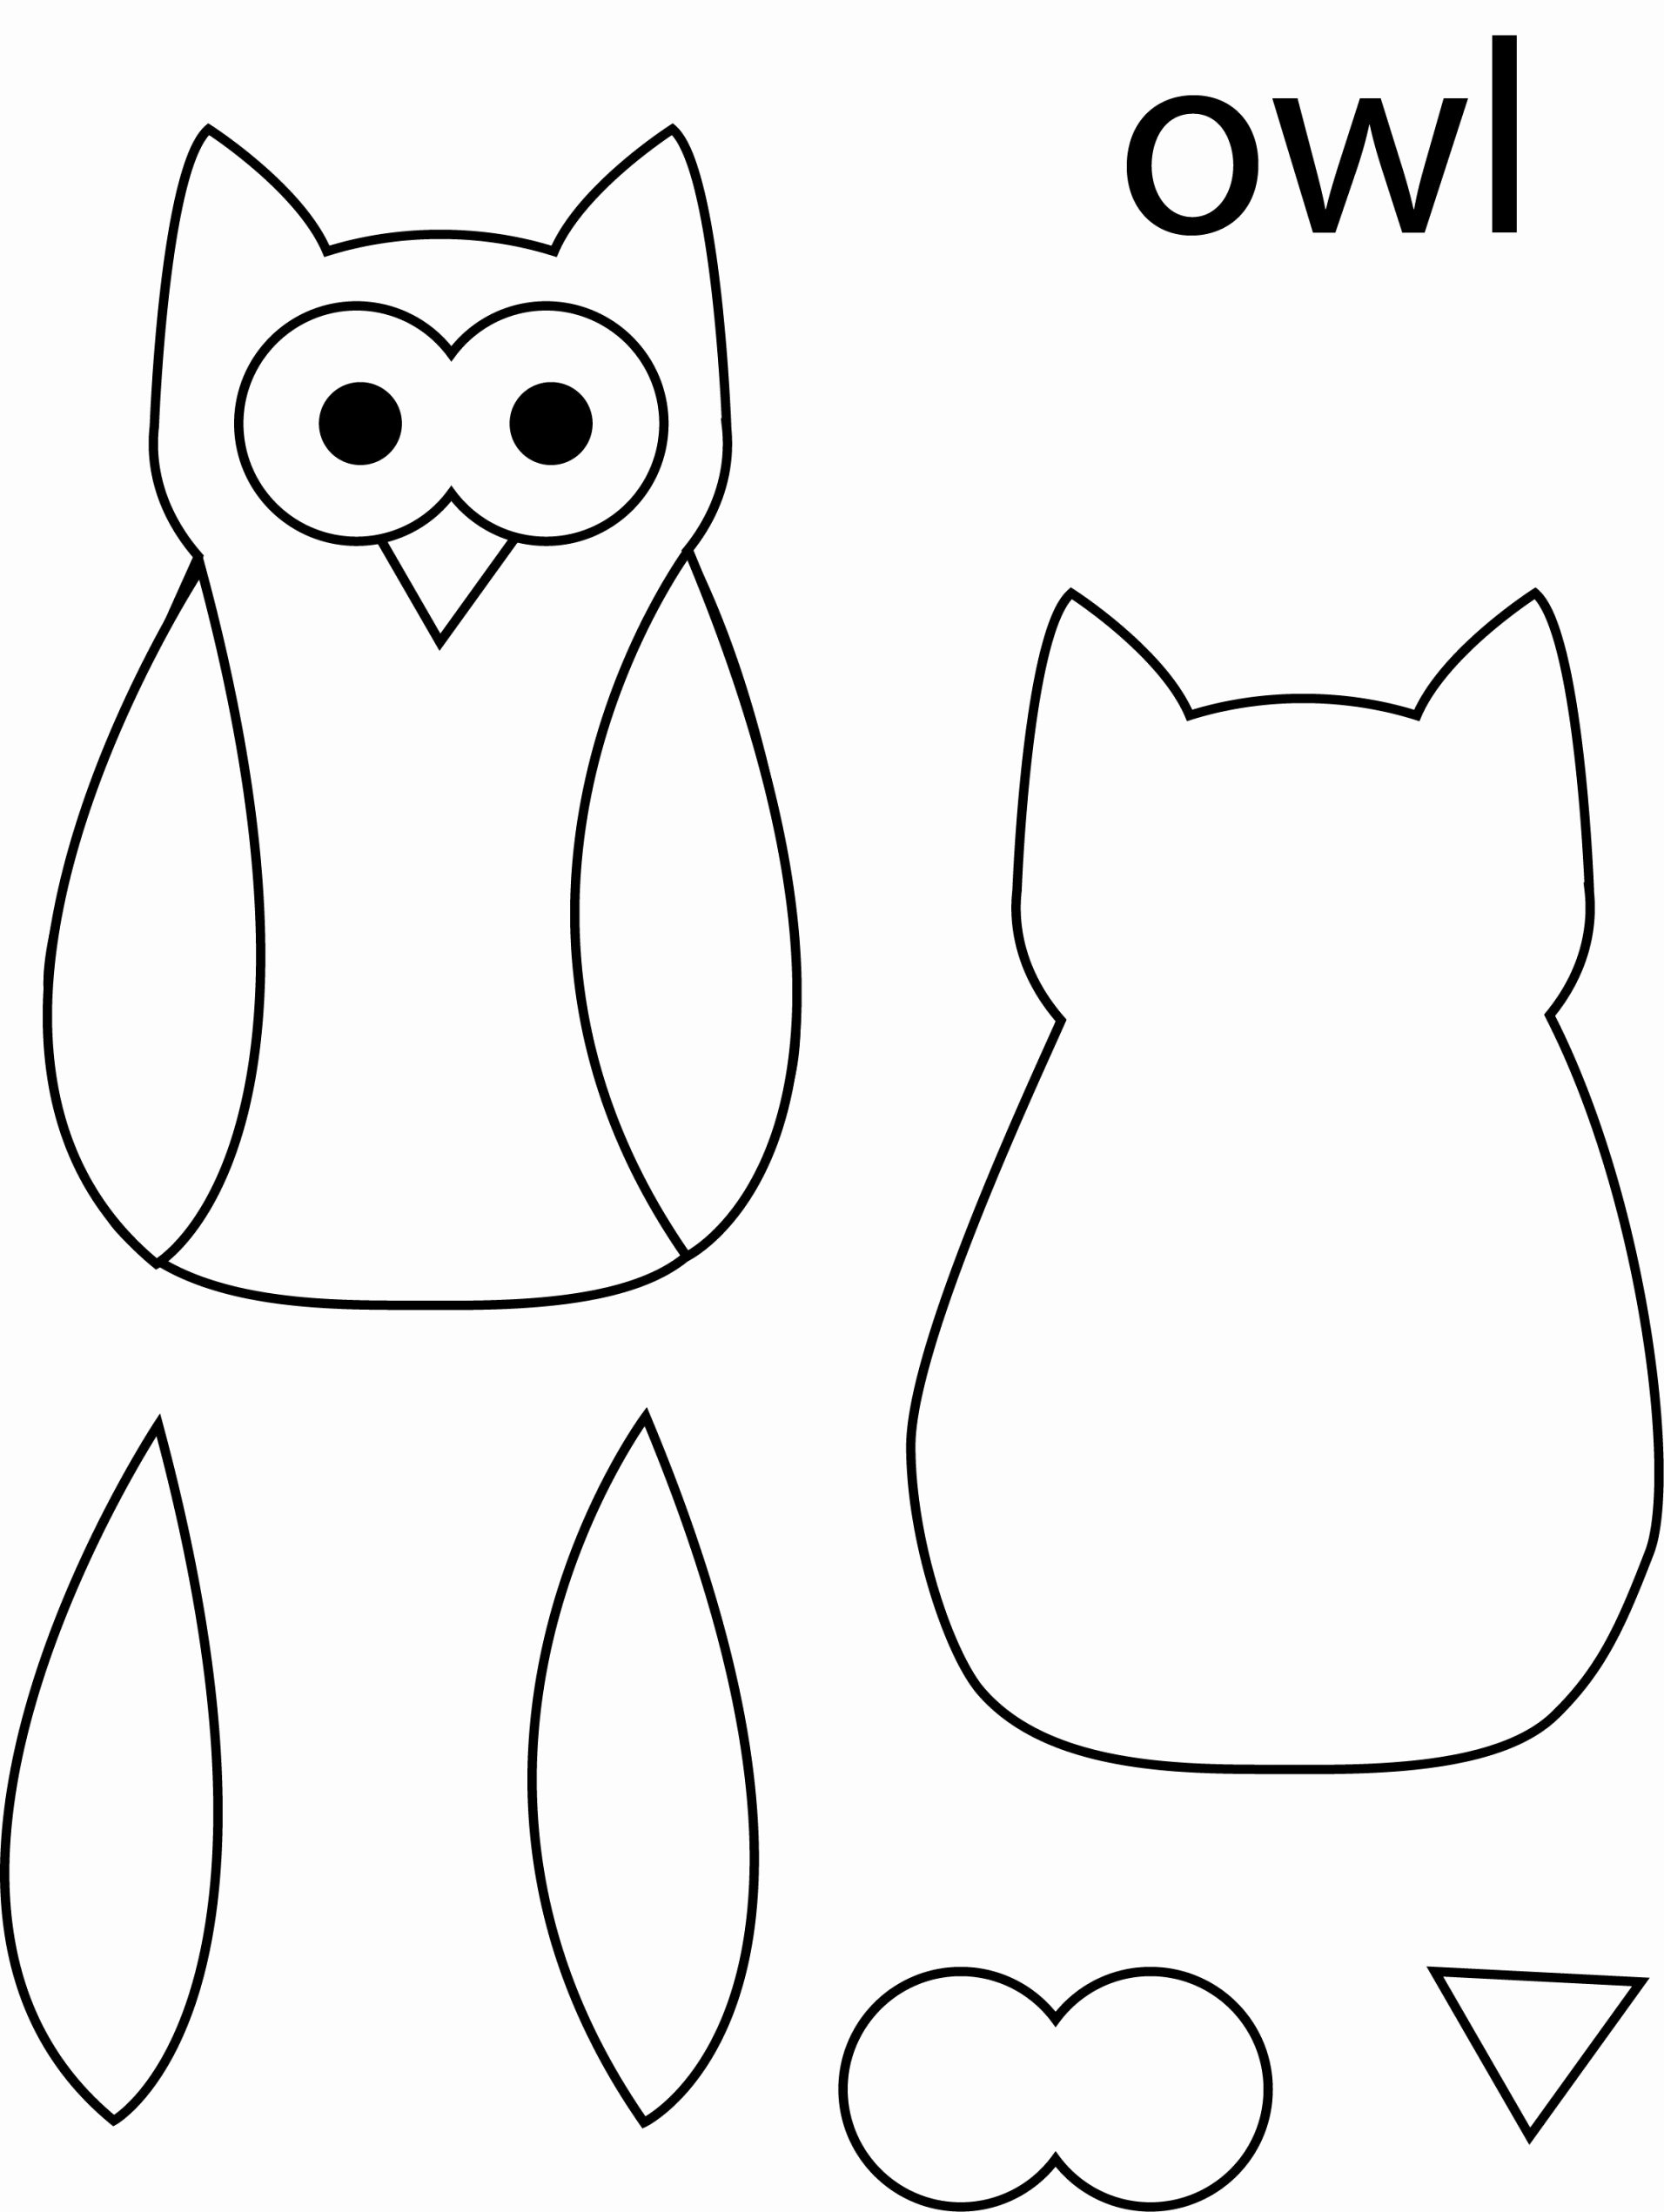 Owl Cut Out Template New Owl Template